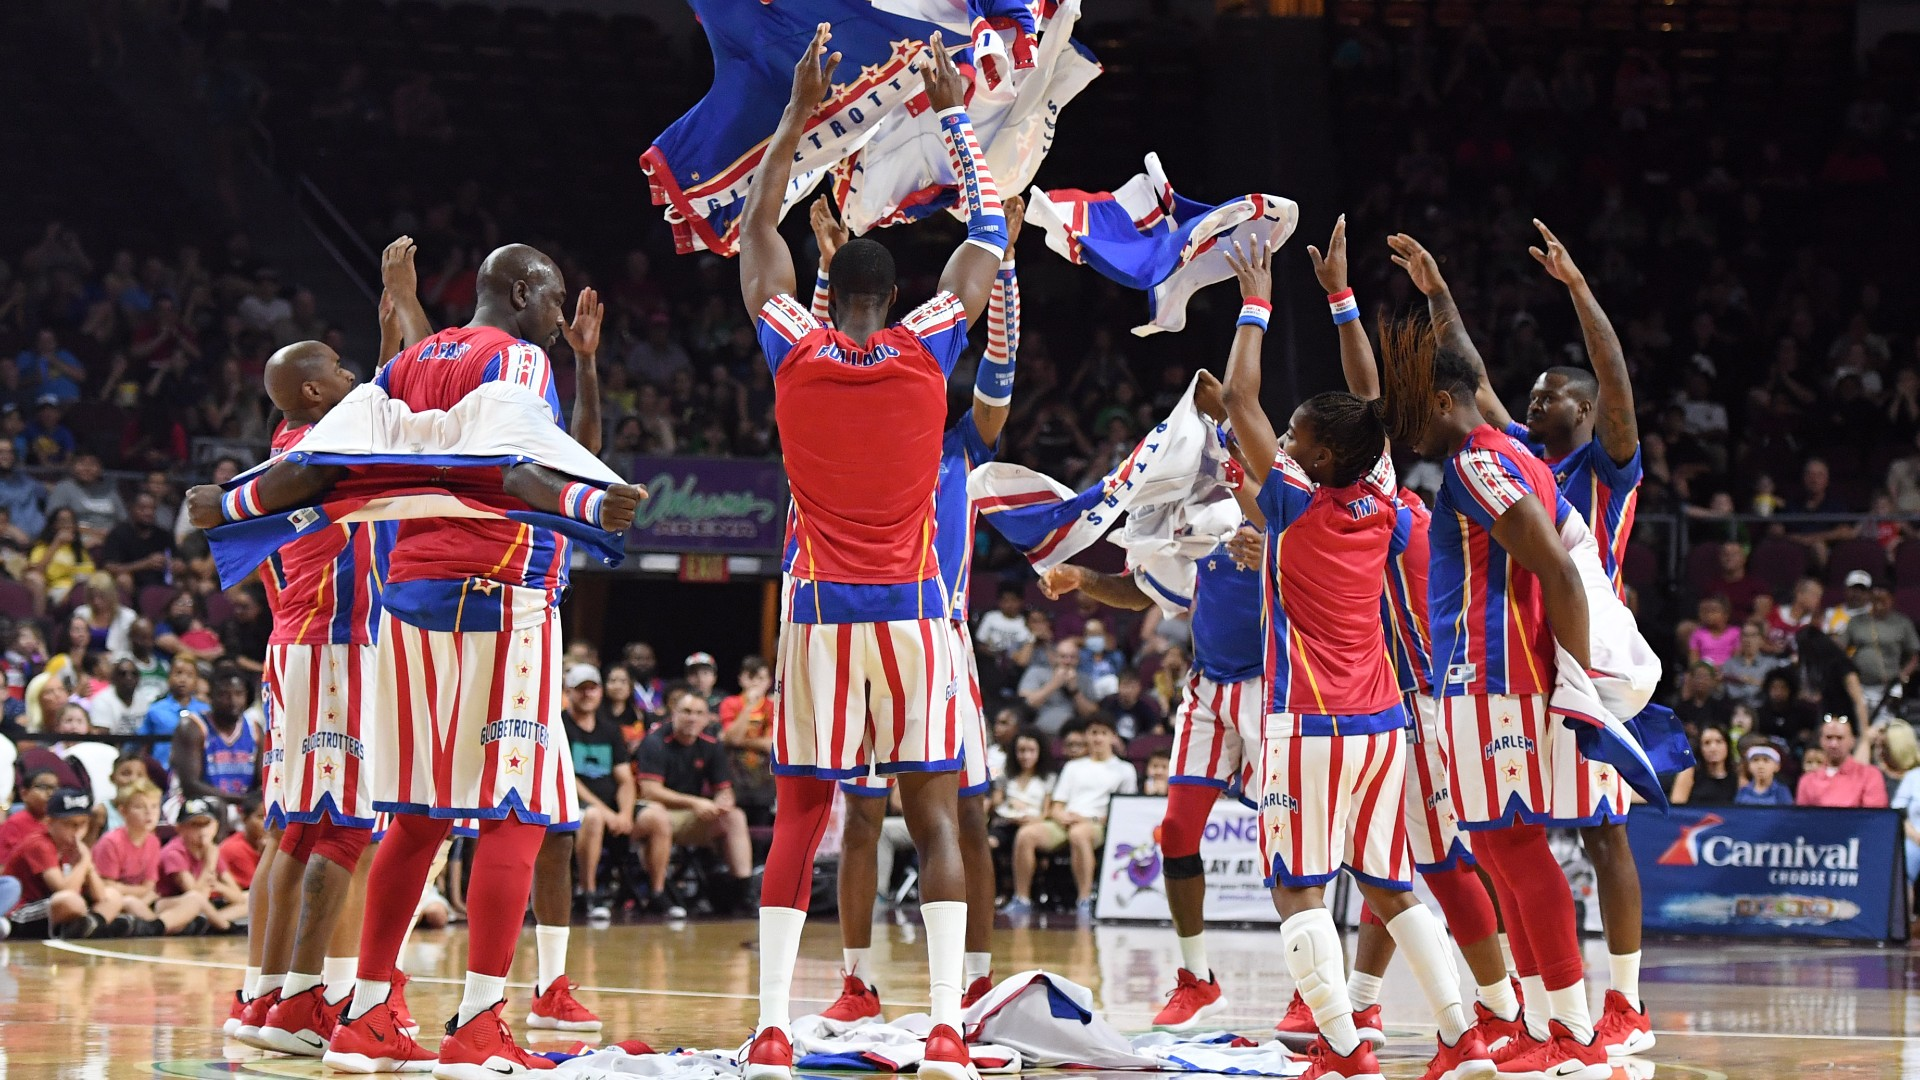 The Harlem Globetrotters have sent a letter to Adam Silver asking him to join the NBA expansion team